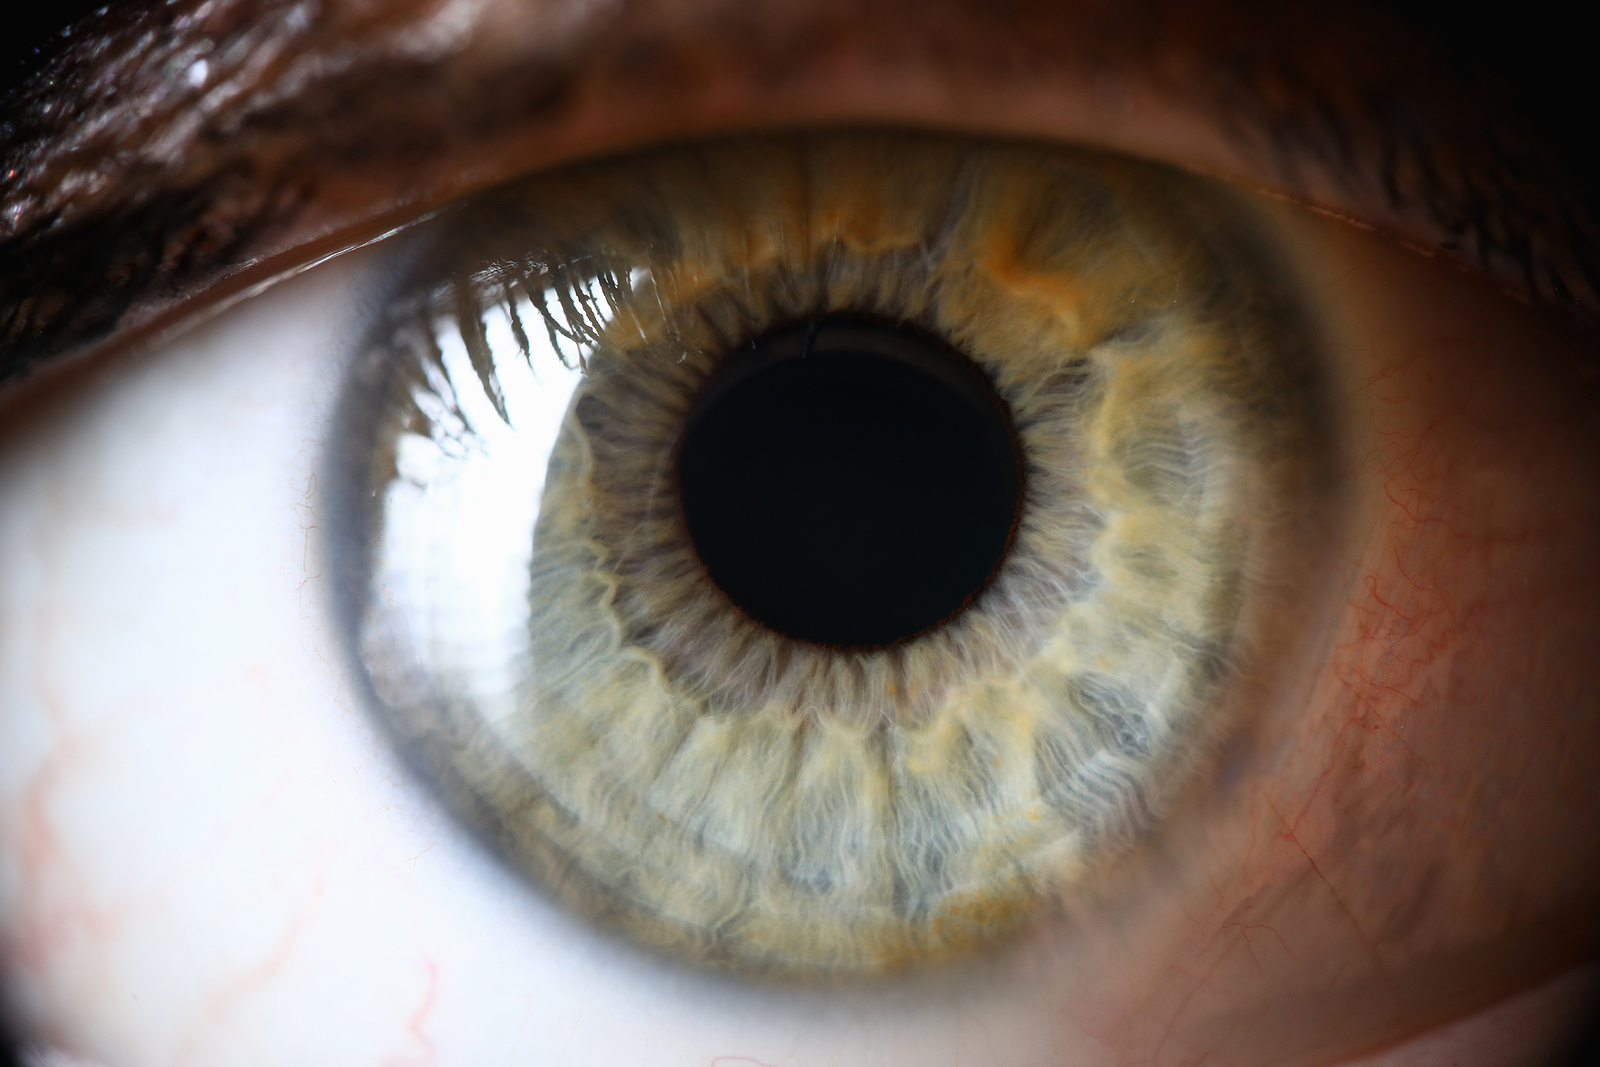 Close up picture of green eye. EMDR therapy in Detroit, MI can help you overcome traumas, anxiety, depression, grief, and more. Talk with an EMDR therapy at our online therapy practice or at our in-person office to see if this is a good fit for you. Call now and find EMDR therapy near you!